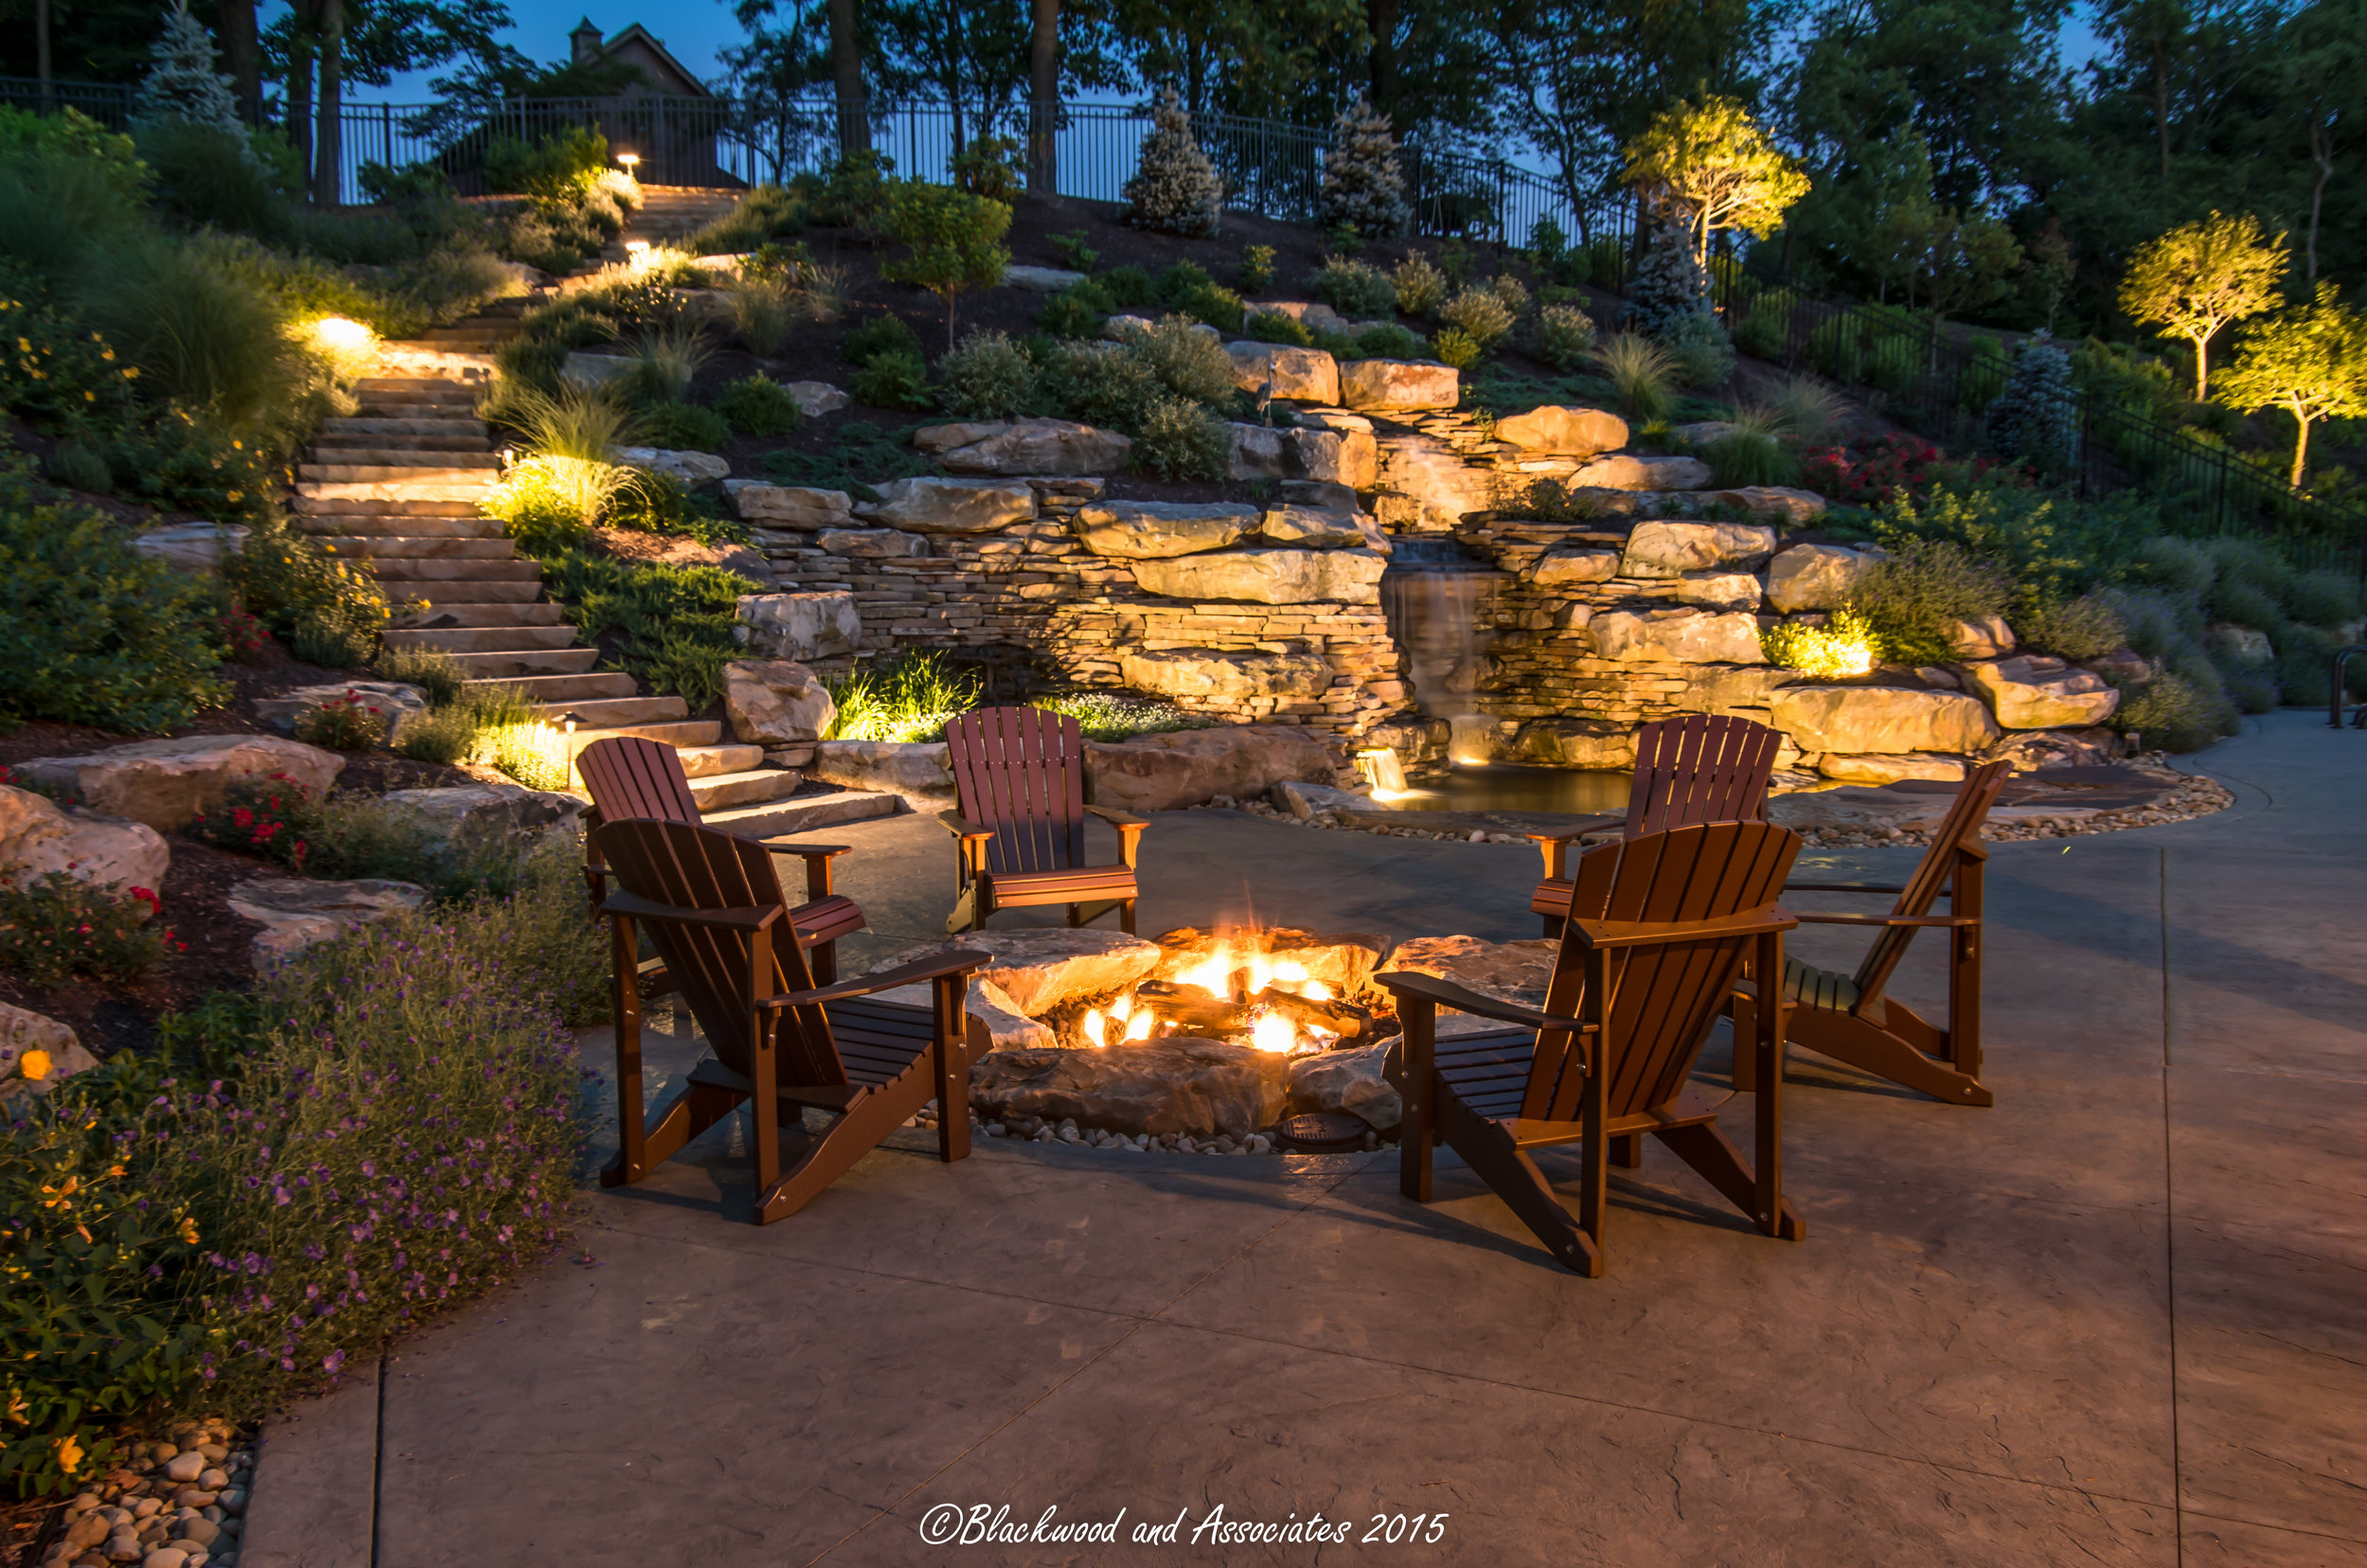 Pittsburgh, PA landscape design and construction - outdoor kitchens and swimming pools